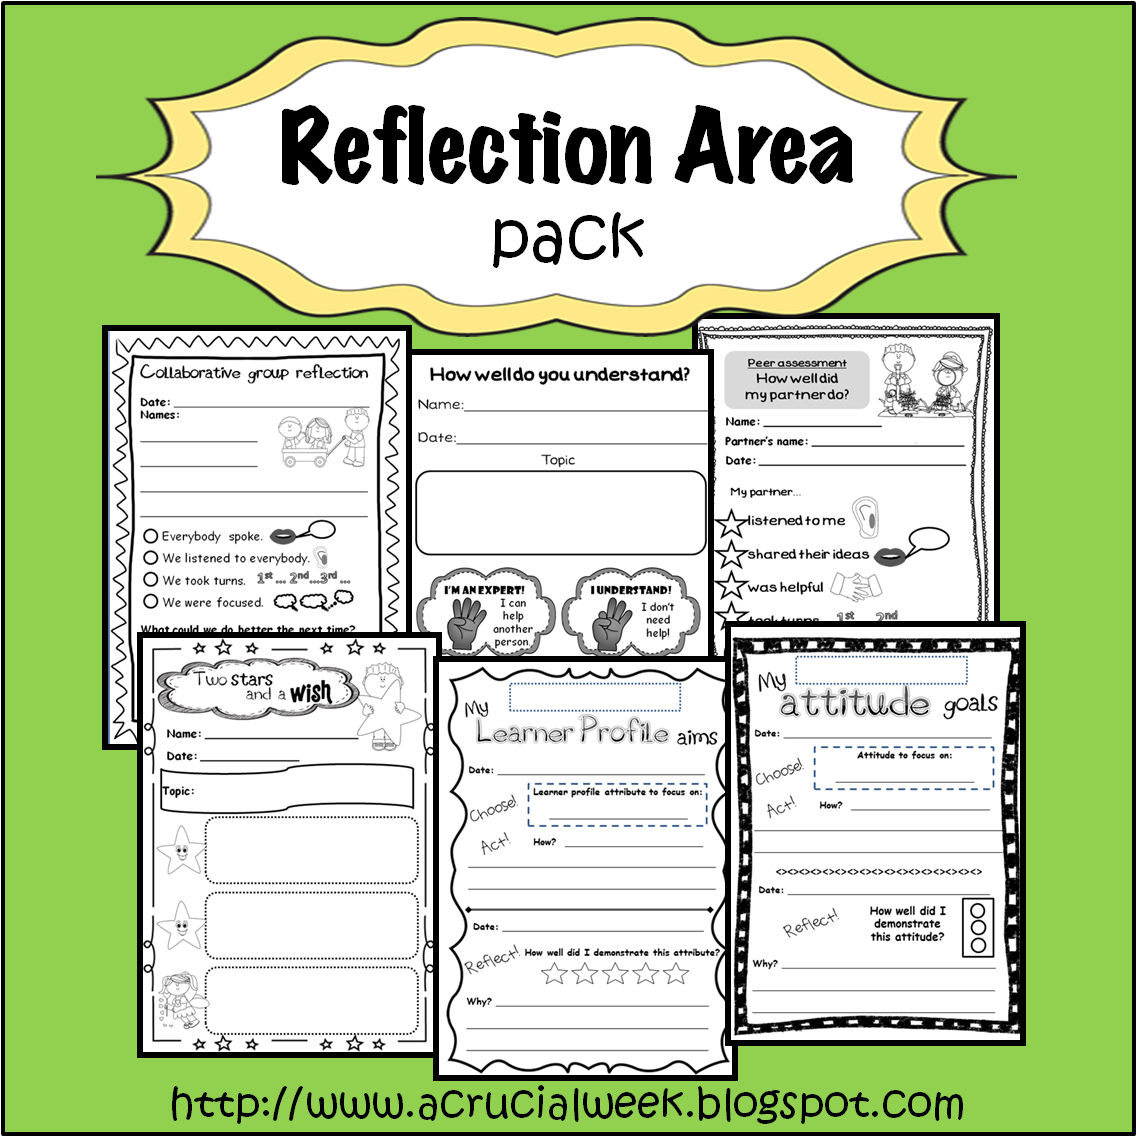 Reflection Area Pack With PeerAssessment GroupAssessment